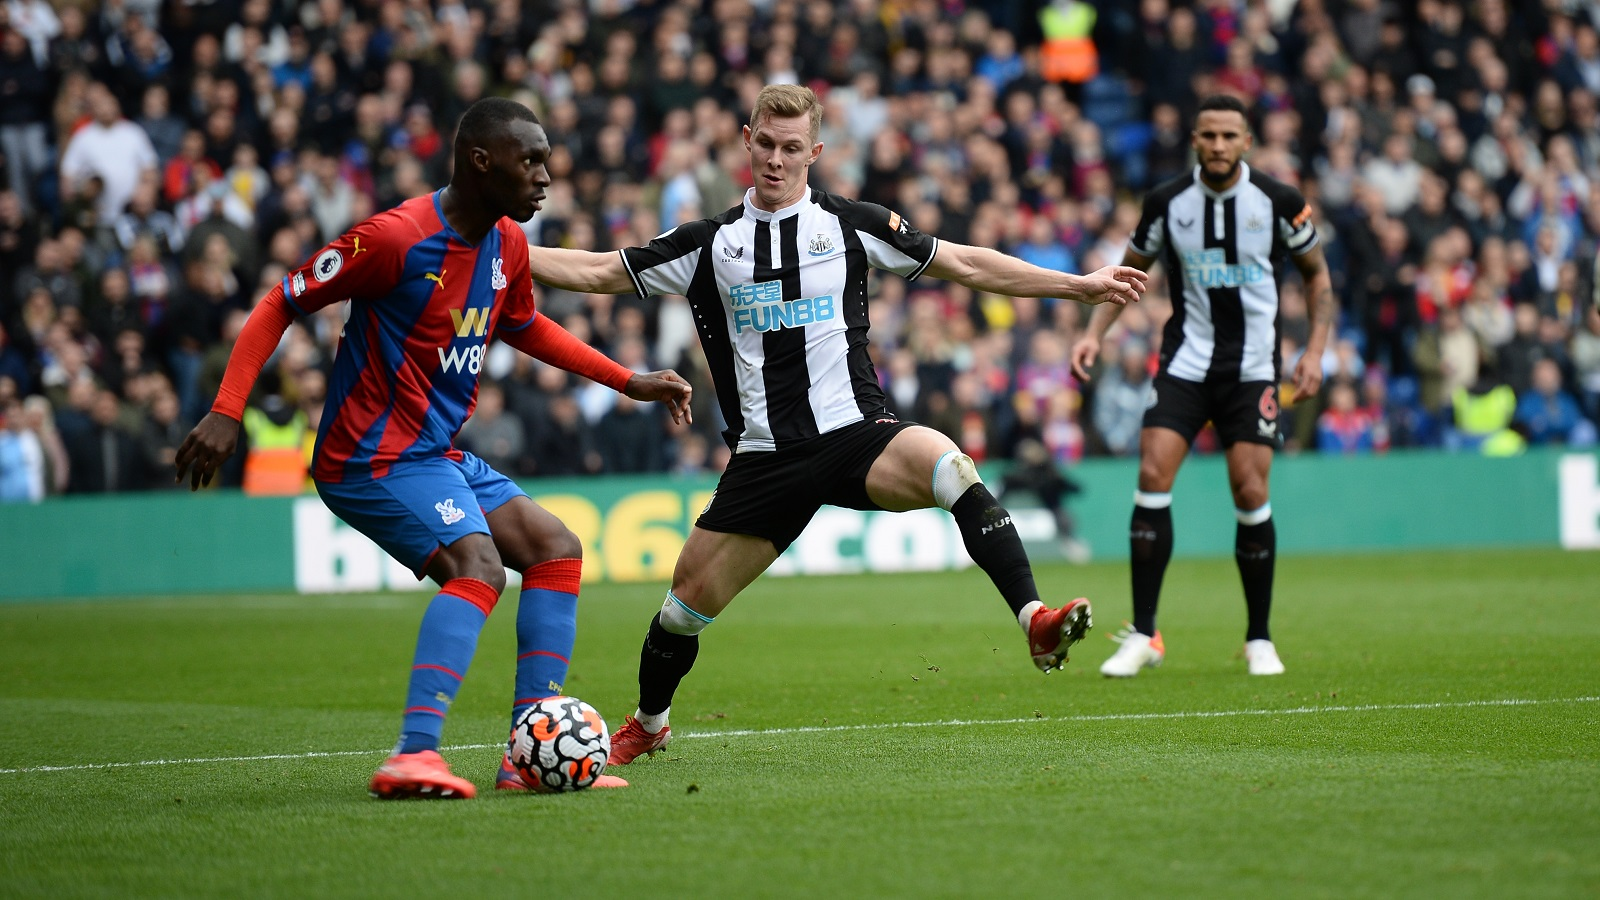 We deserved point at Palace, says Krafth